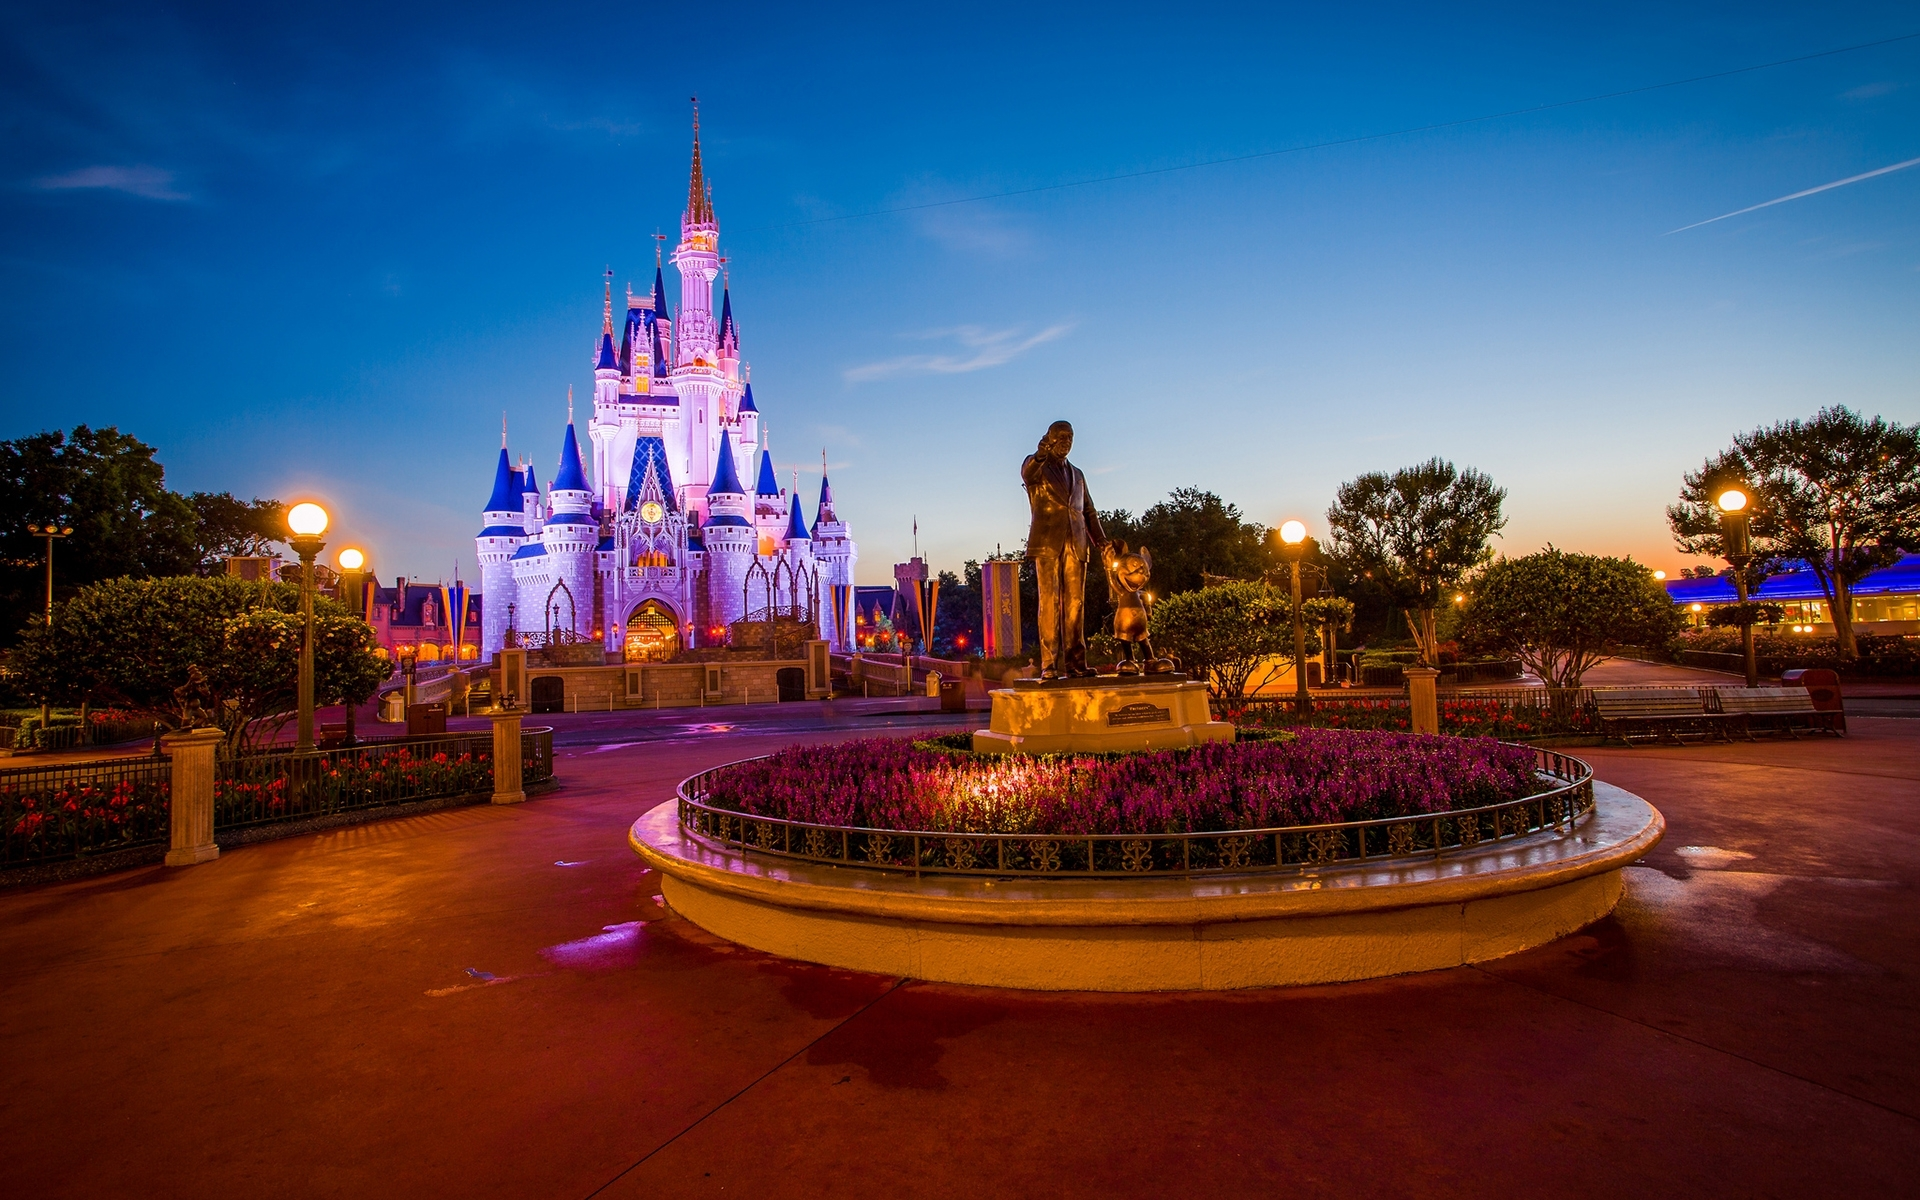 disney world wallpapers, 48 disney world high quality backgrounds